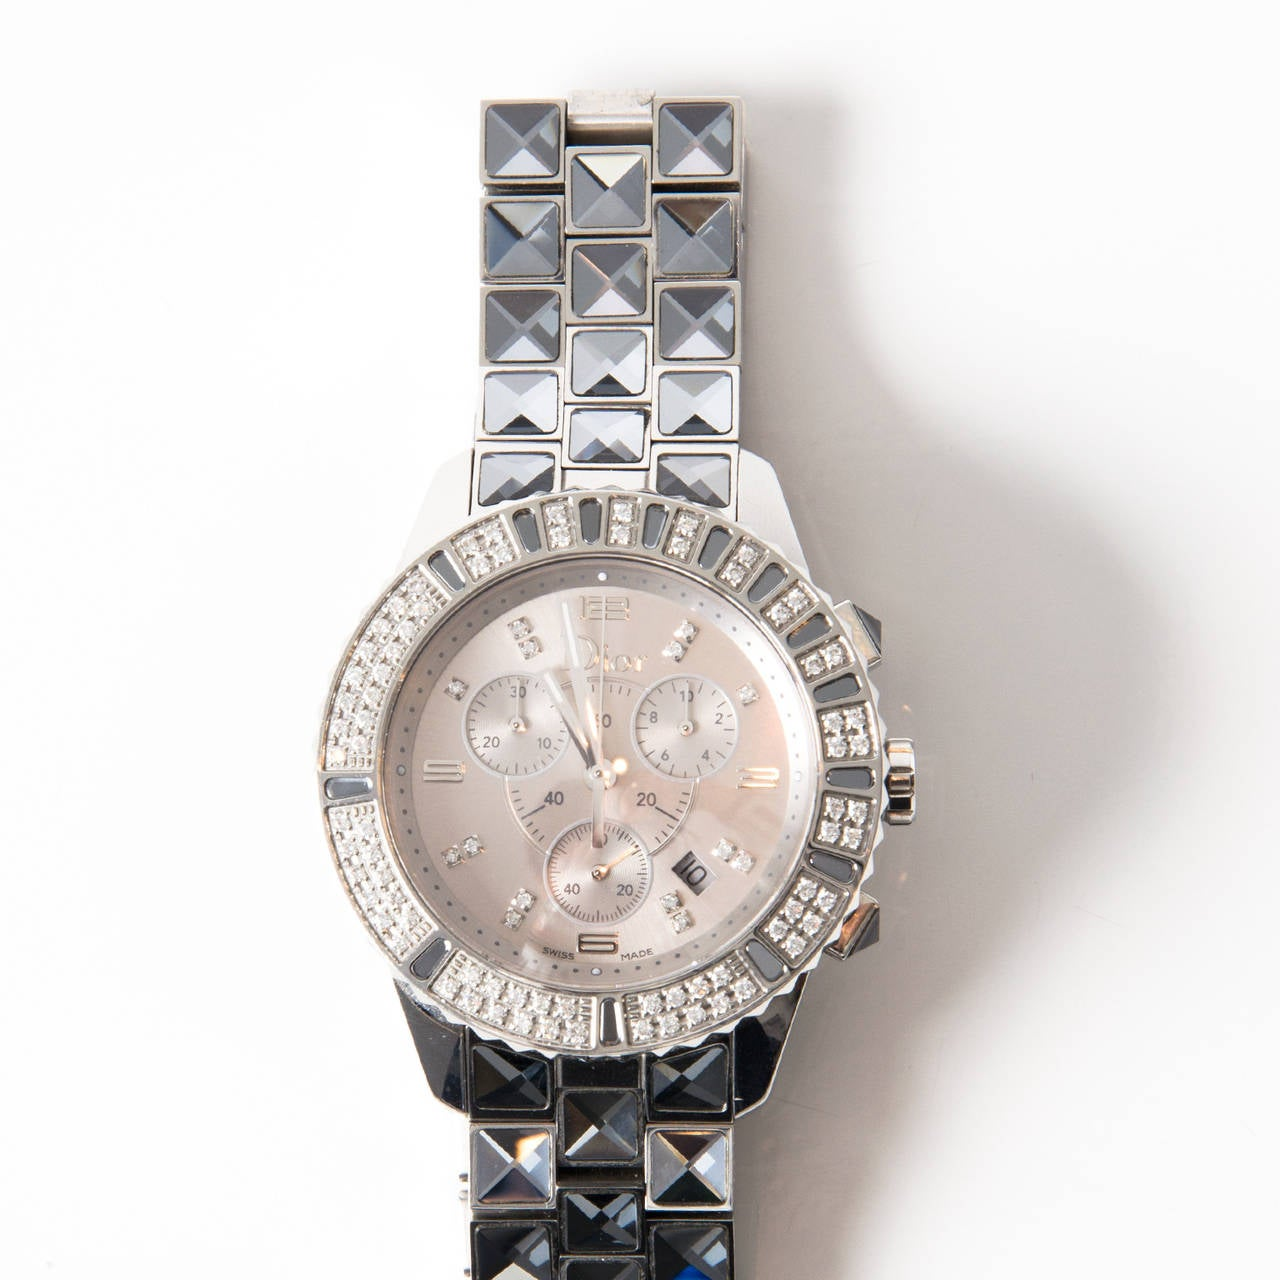 Christian dior ladies watch dior christal for sale at 1stdibs for Christian dior watches